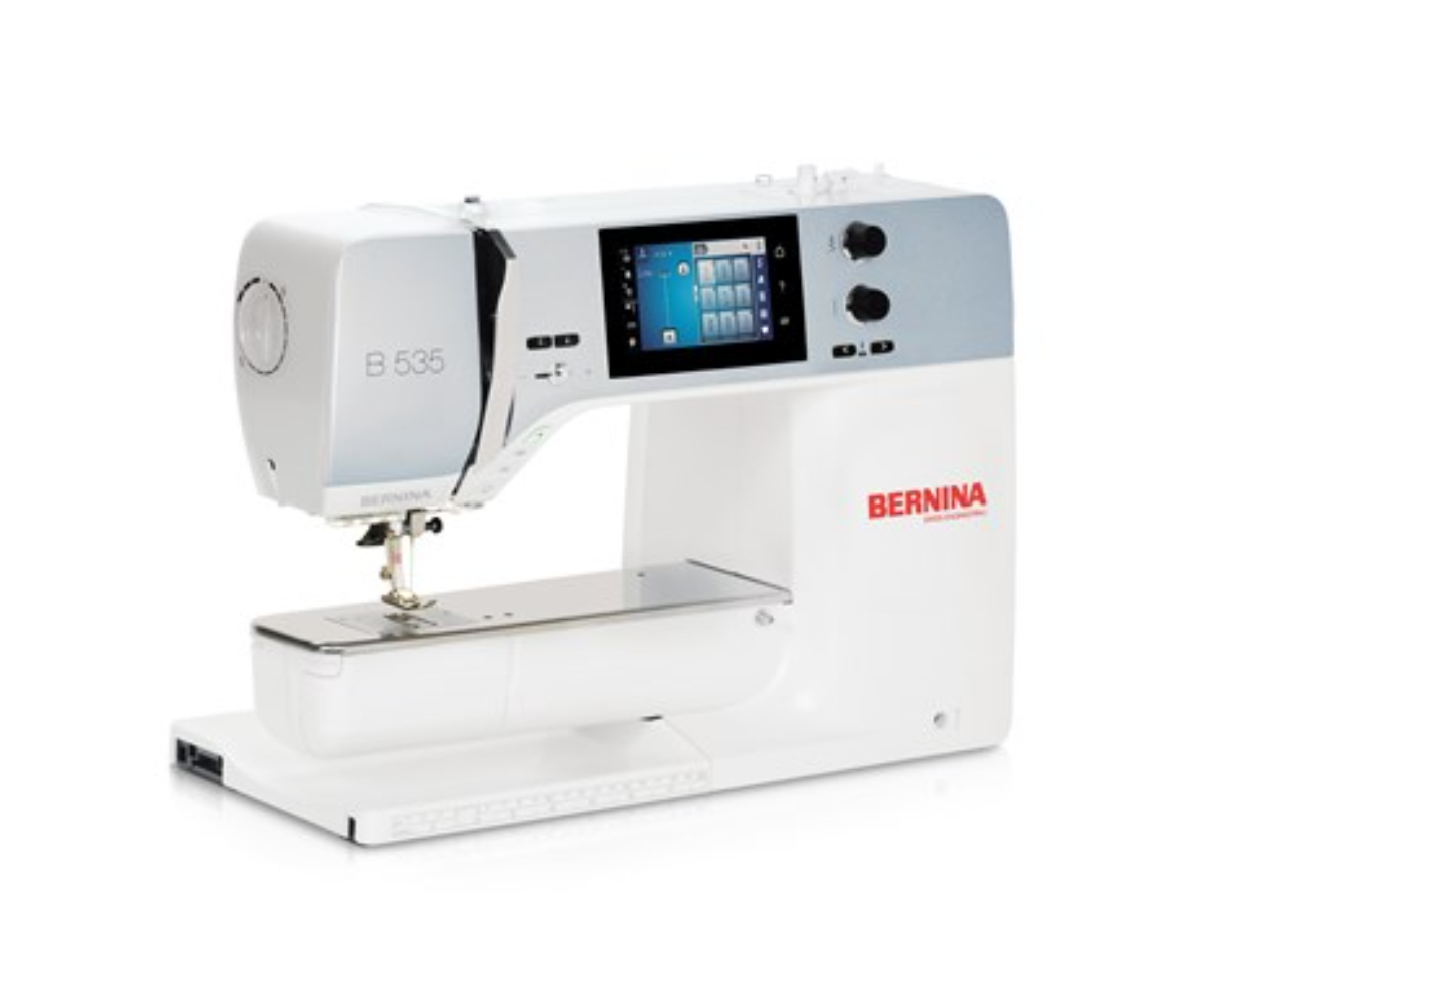 Bernina 535/B 535 E Sewing/Embroidery Machine